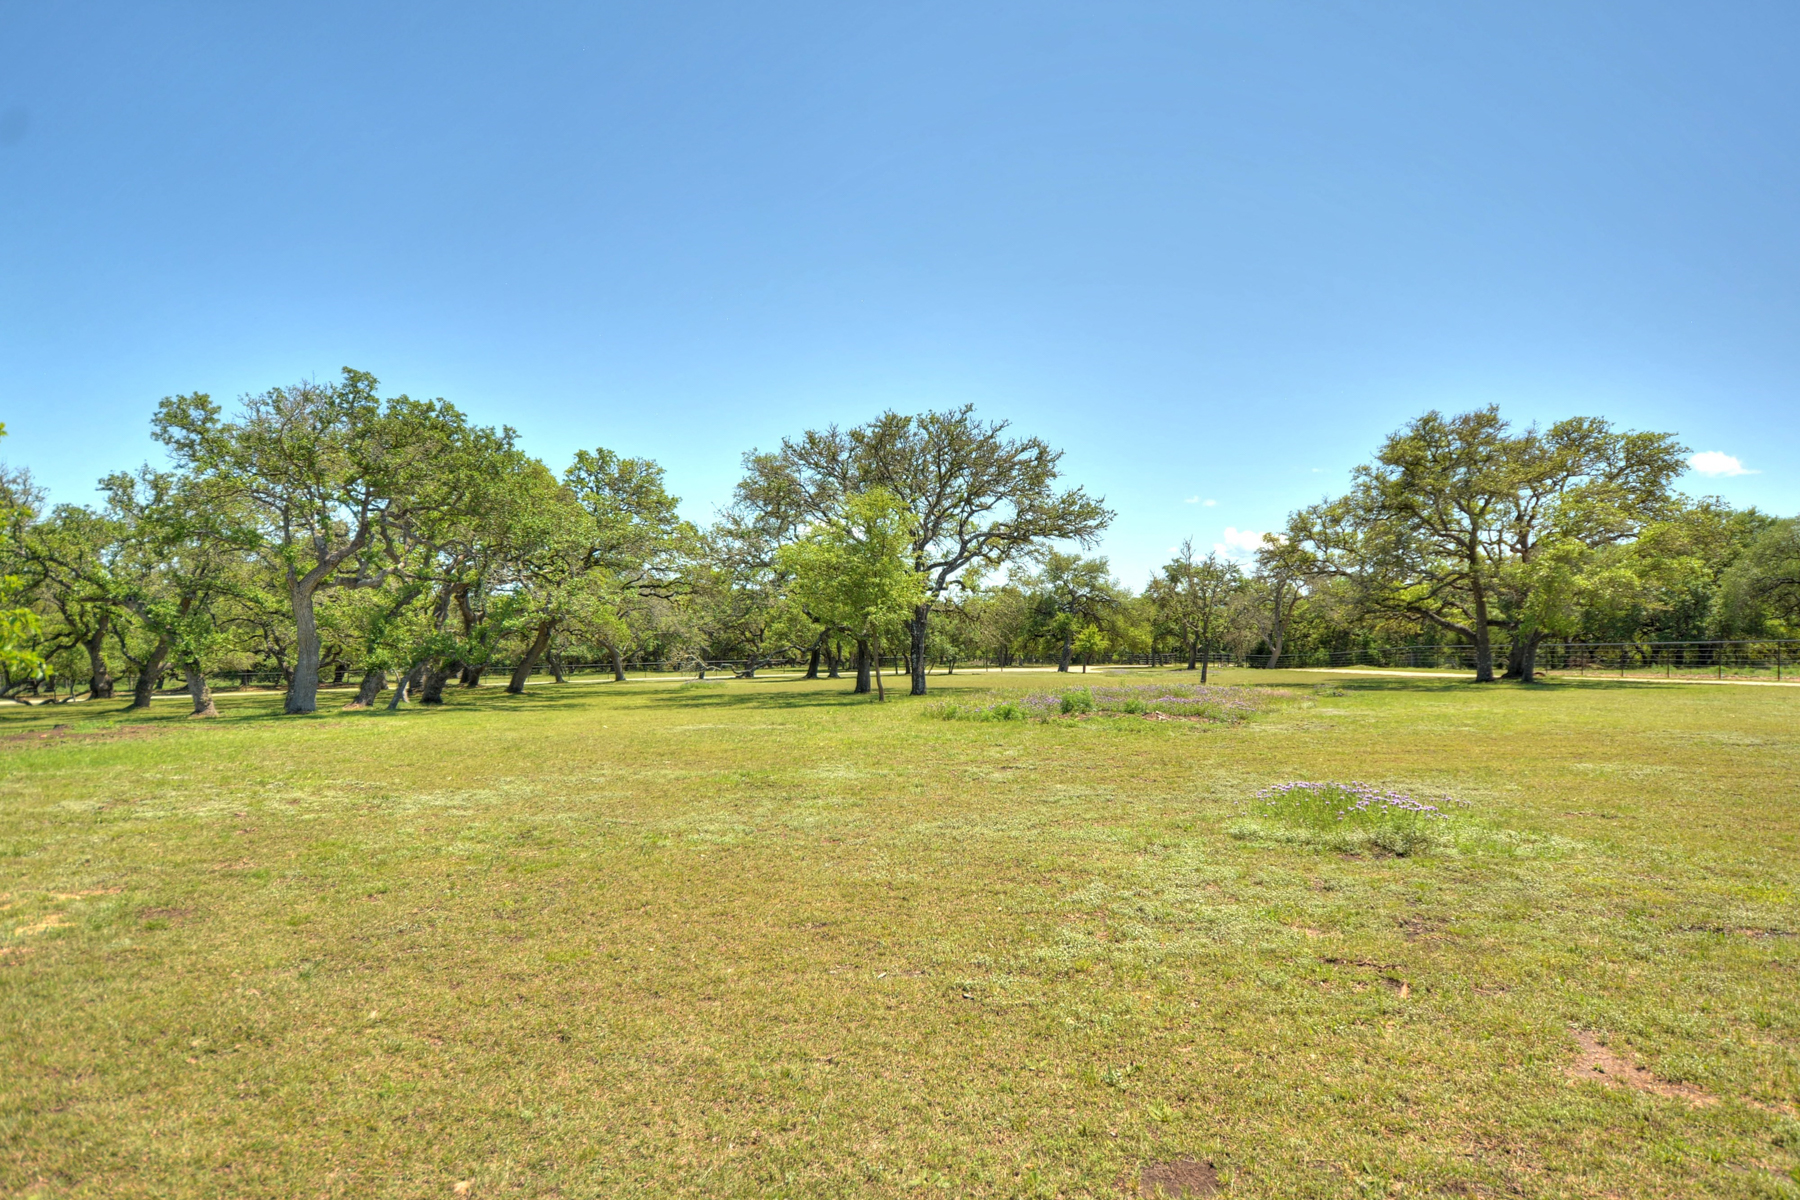 Additional photo for property listing at 15.84+/- Acre Premium Horse Property 47 Pfeiffer Rd Boerne, Texas 78006 Estados Unidos